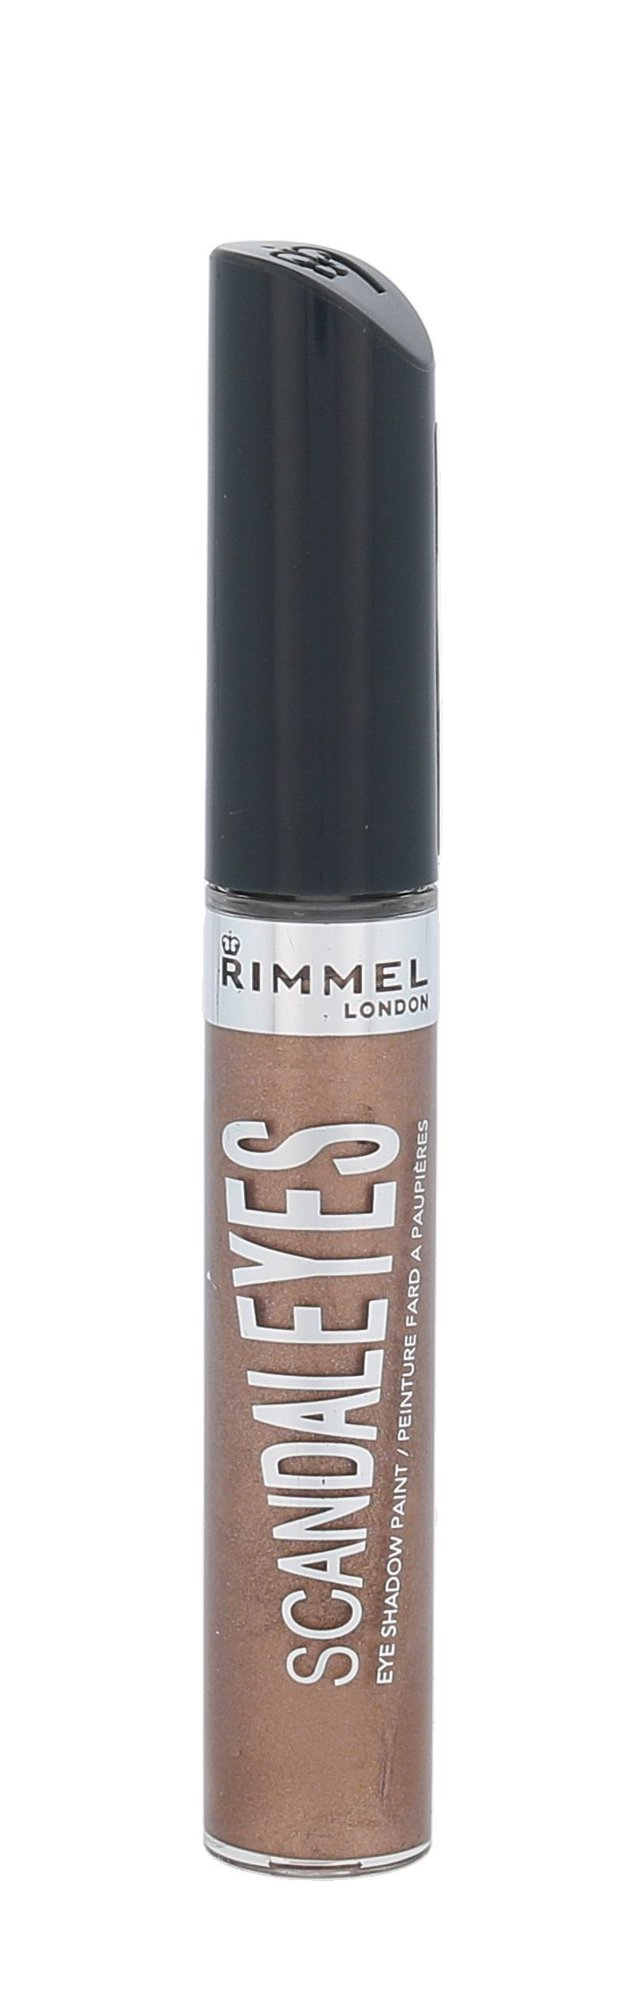 Rimmel London Scandal Eyes Cosmetic 7ml 006 Rich Russet